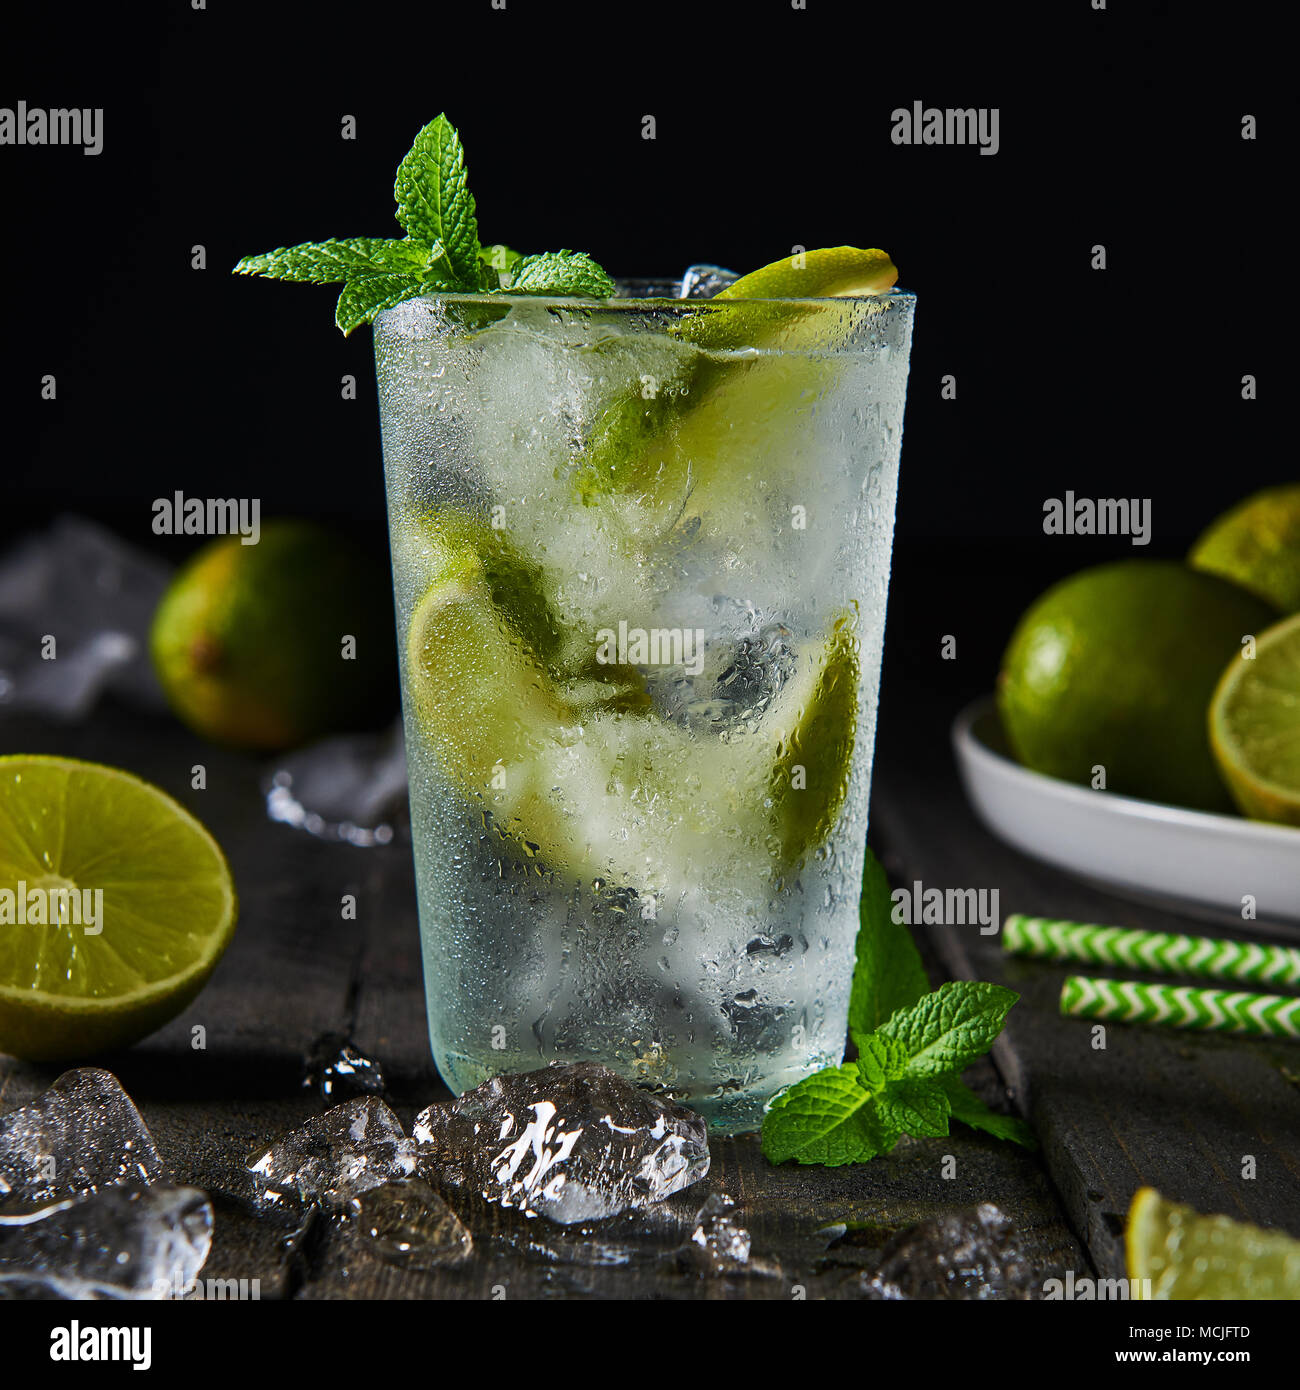 Mojito cocktail with lime and mint in highball glass with ice on a dark wood background. Square crop. - Stock Image